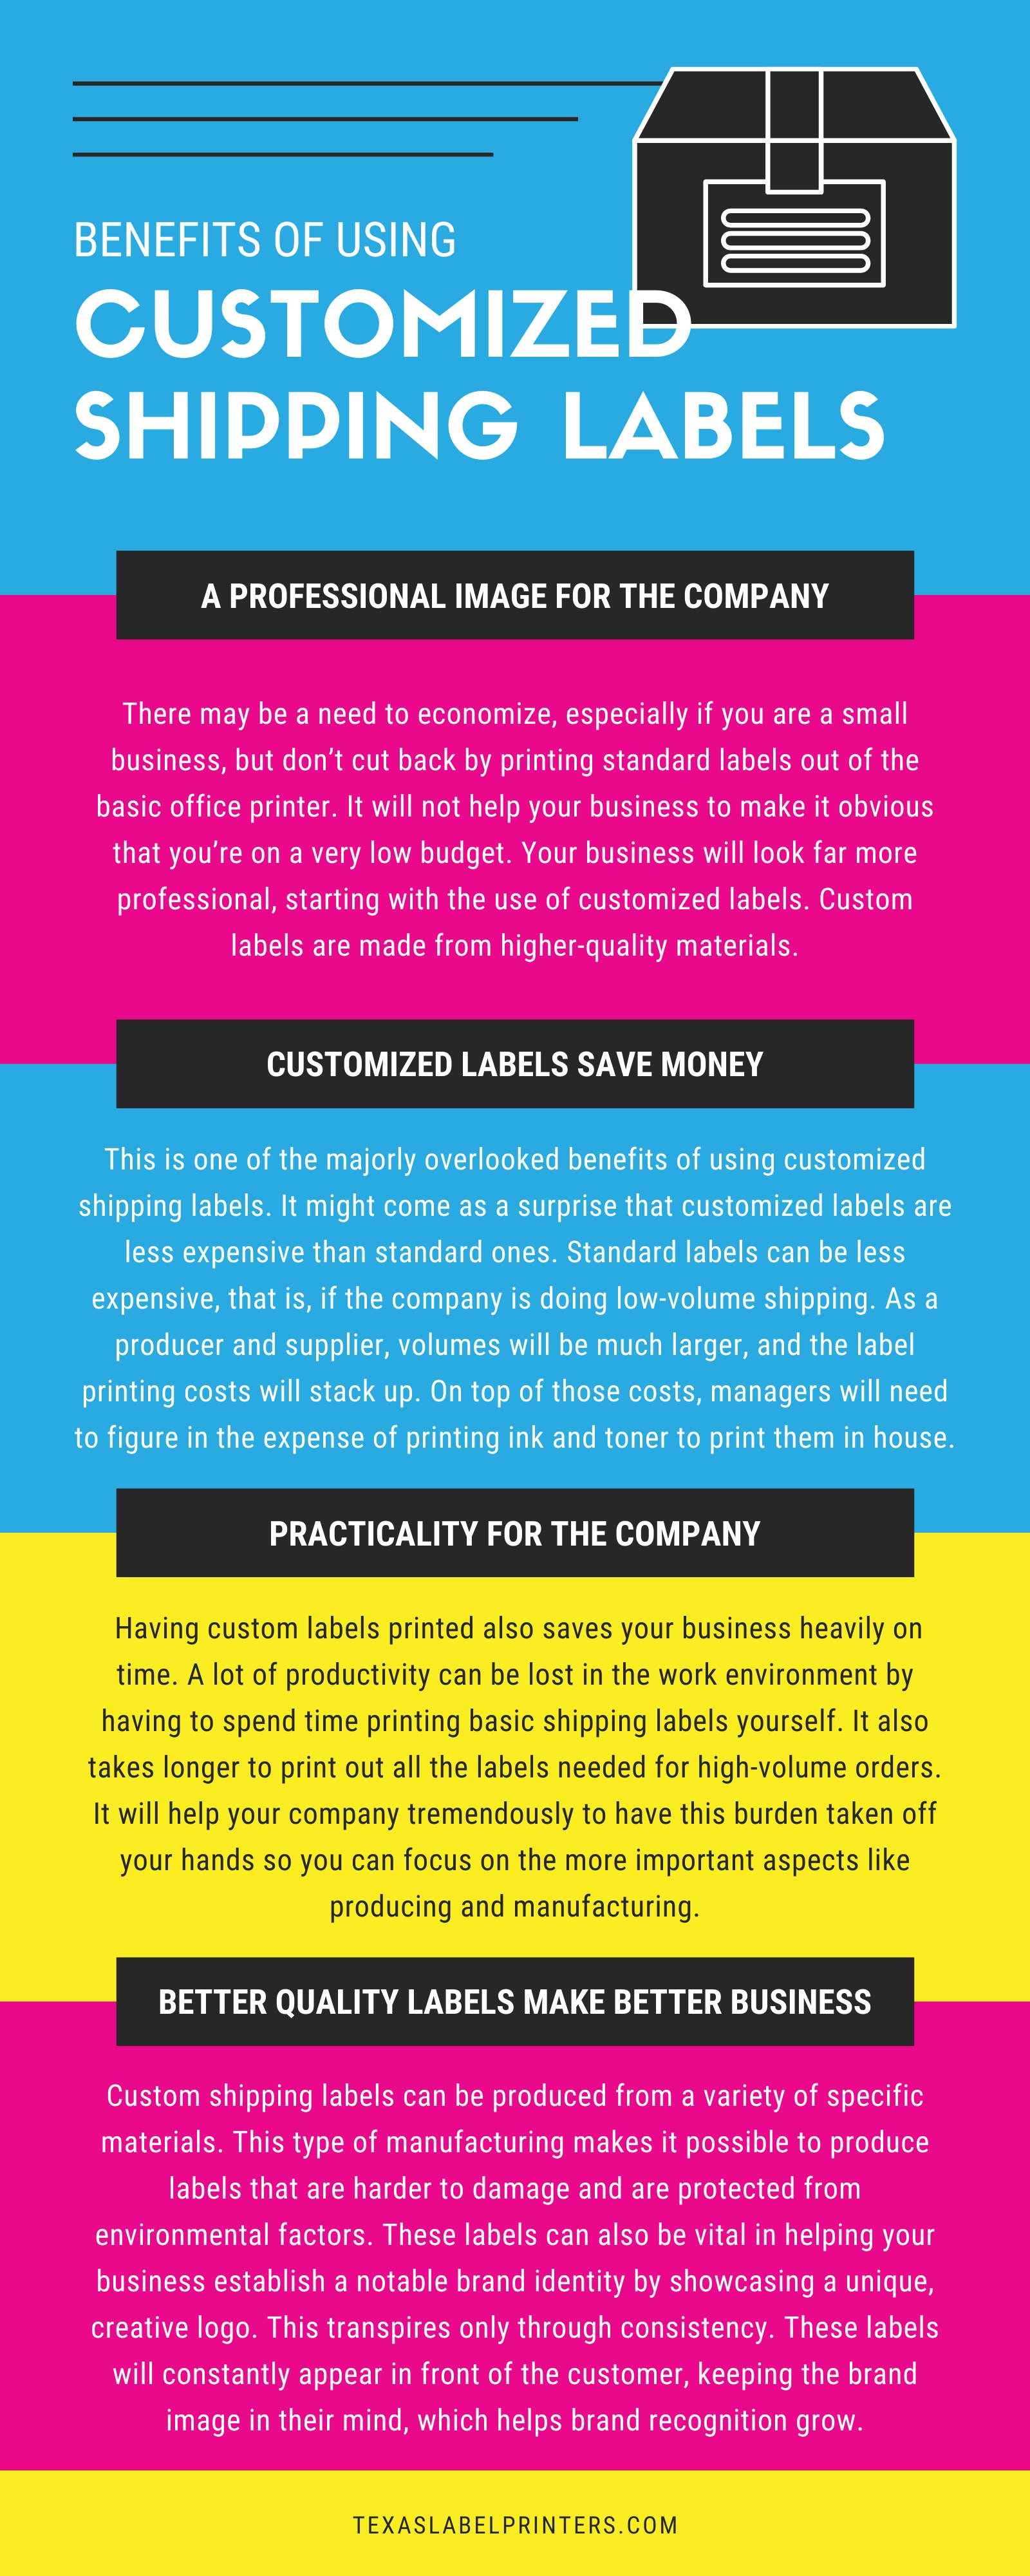 Benefits of Using Customized Shipping Labels Infographic